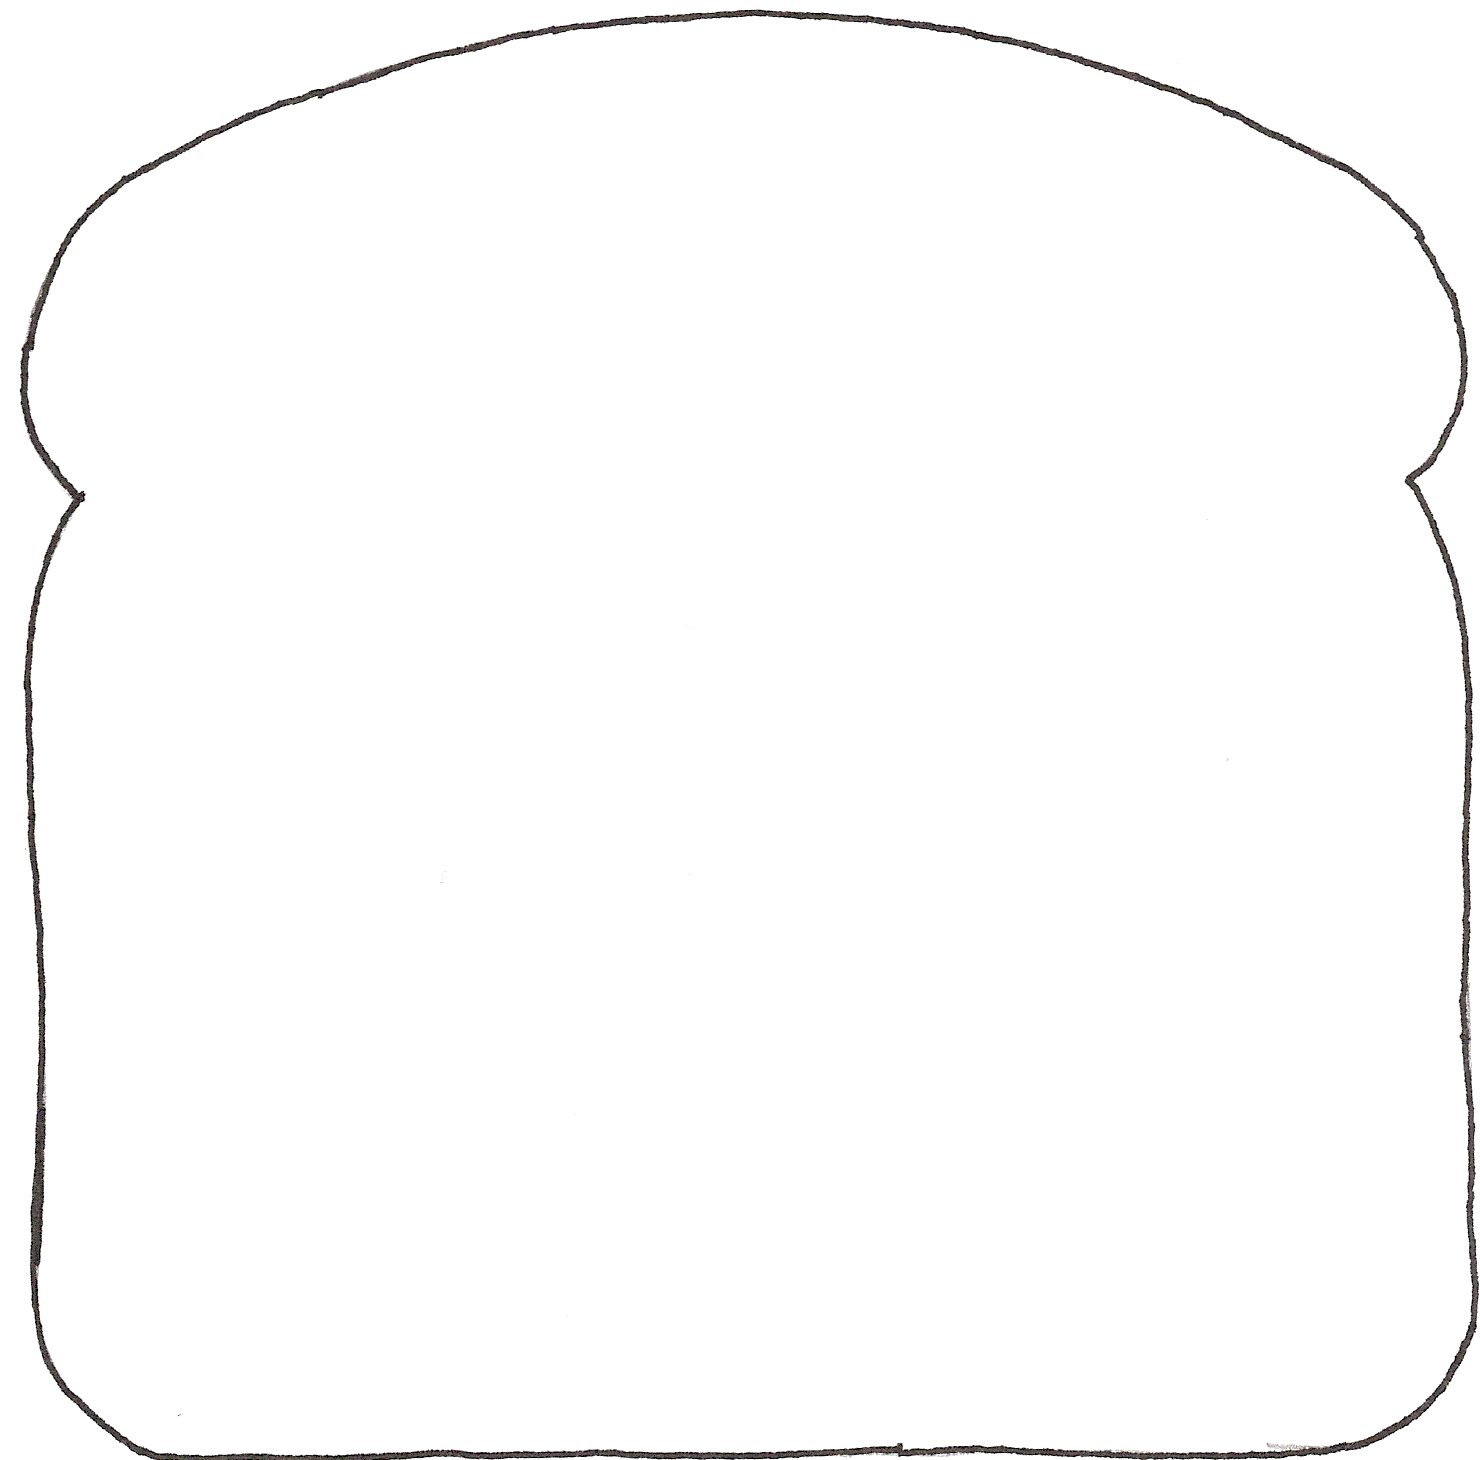 loaf of bread outline - Google Search | TAT2 | Pinterest